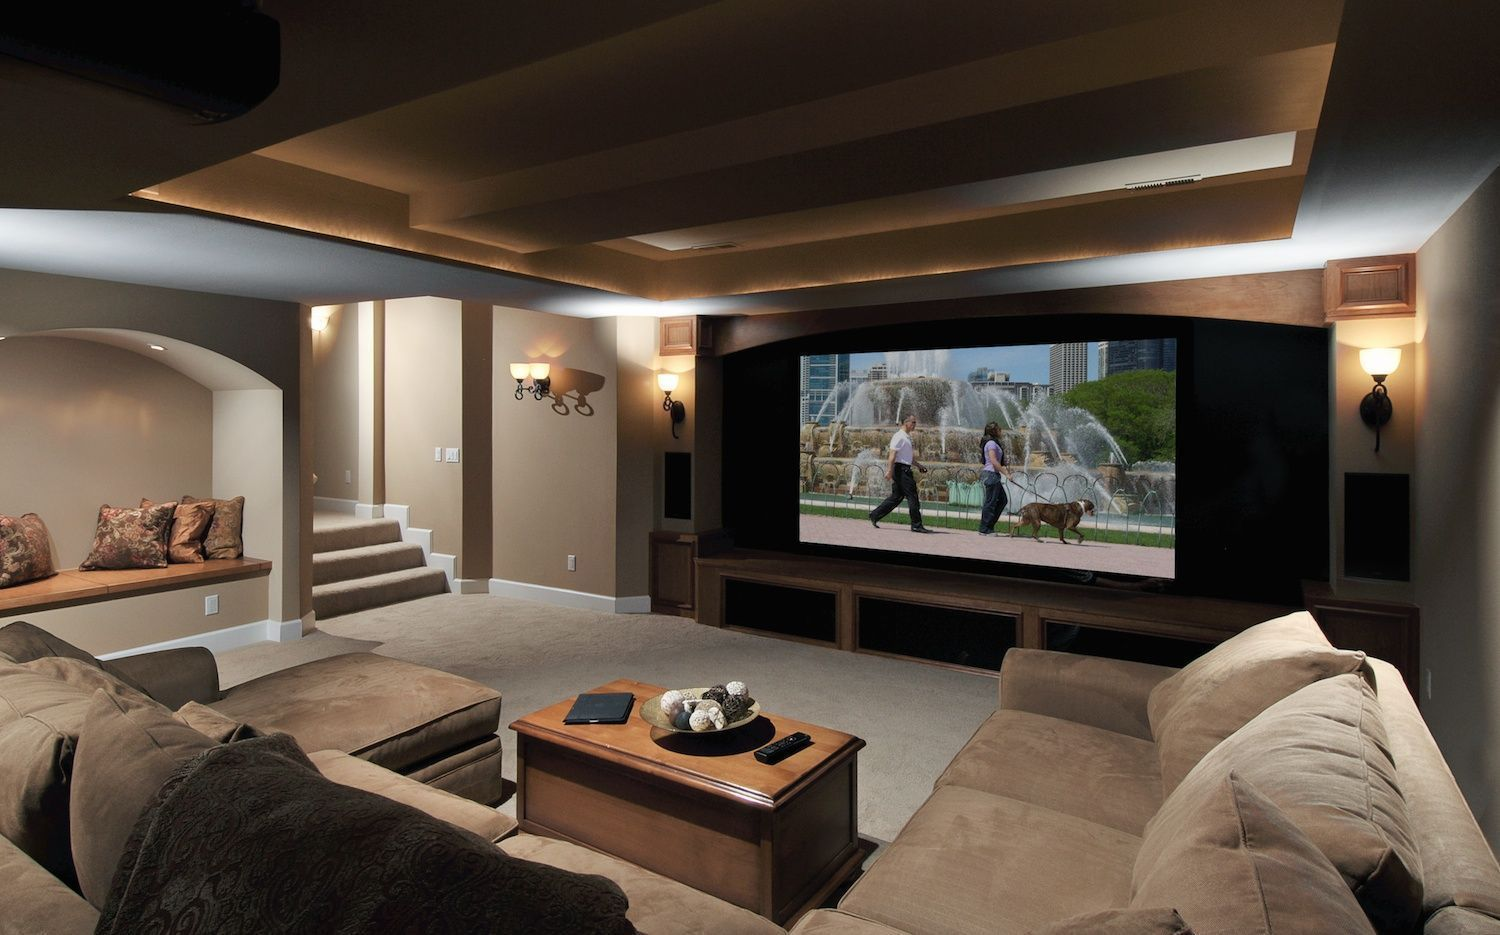 Home Theater Design Ideas Diy: More Ideas Below: DIY Home Theater Decorations Ideas